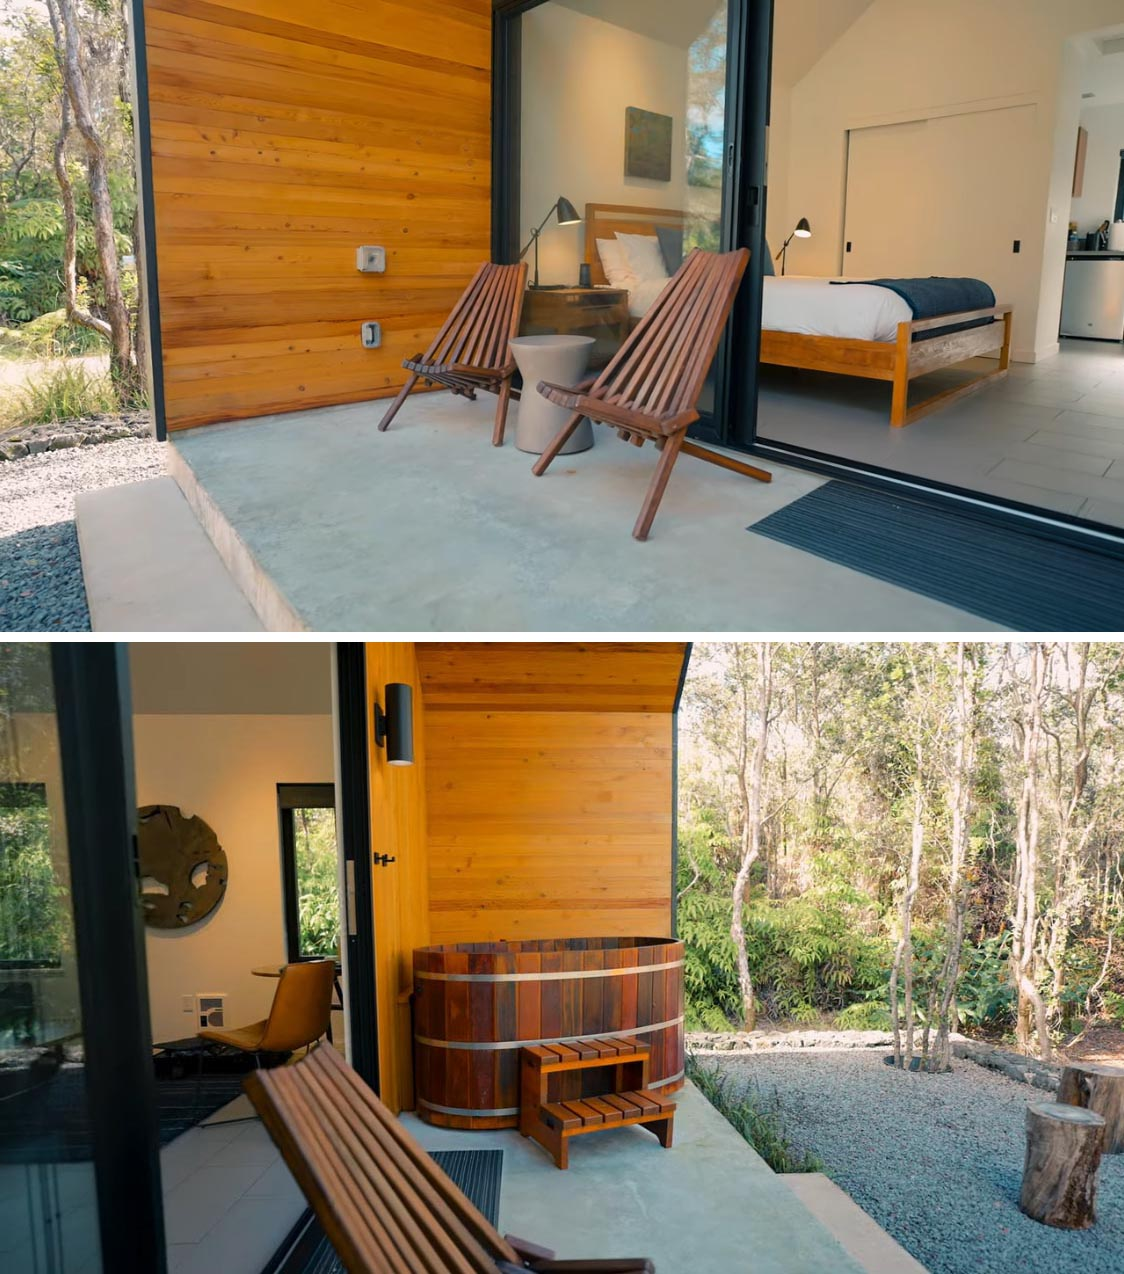 A modern tiny house with a private lanai that includes a hot tub and lounge chairs.